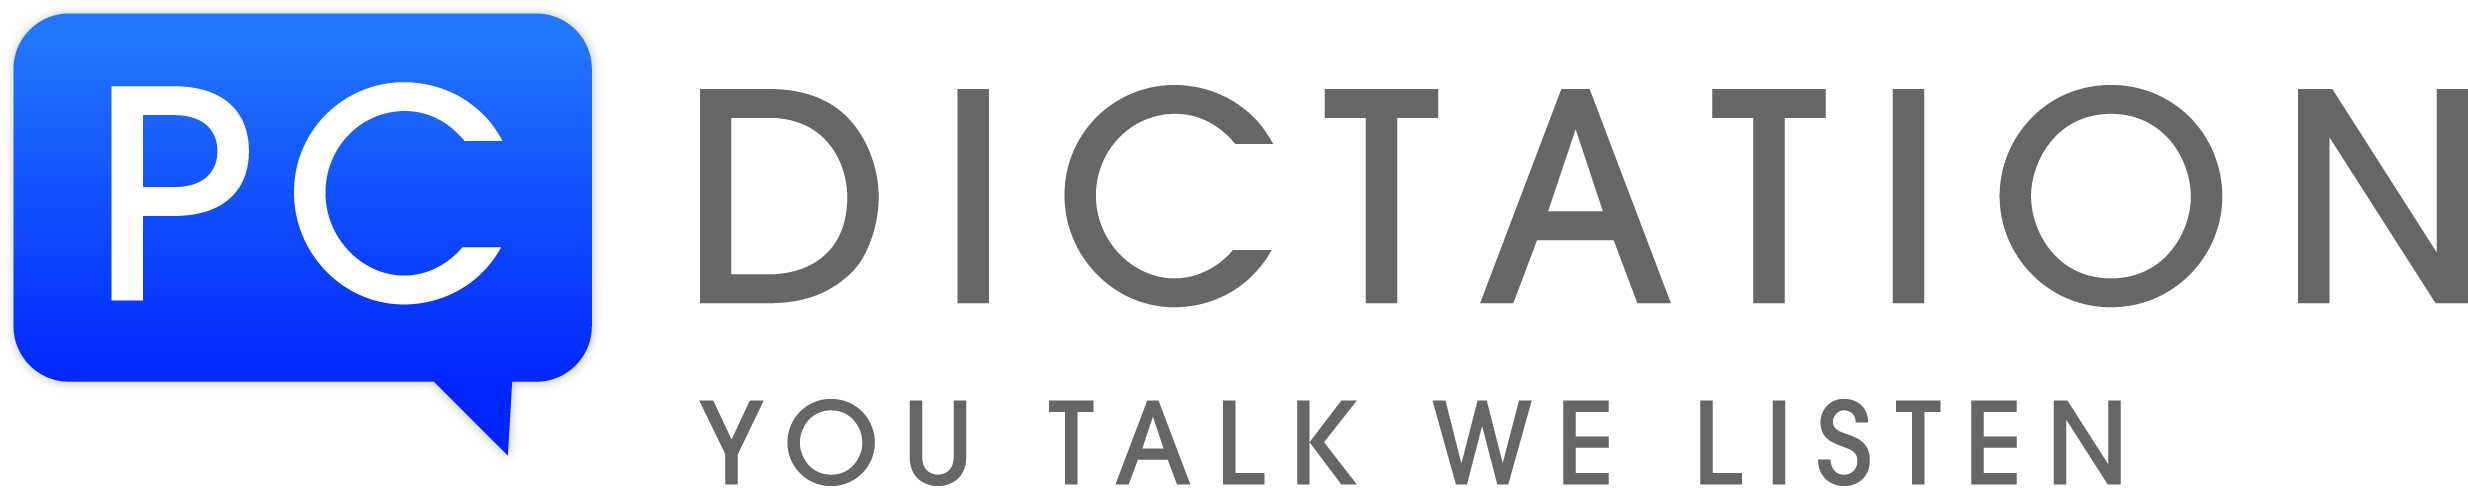 PC Dictation has now merged with VoiceX Communications : Voice Recognition & Digital Dictation Specialists